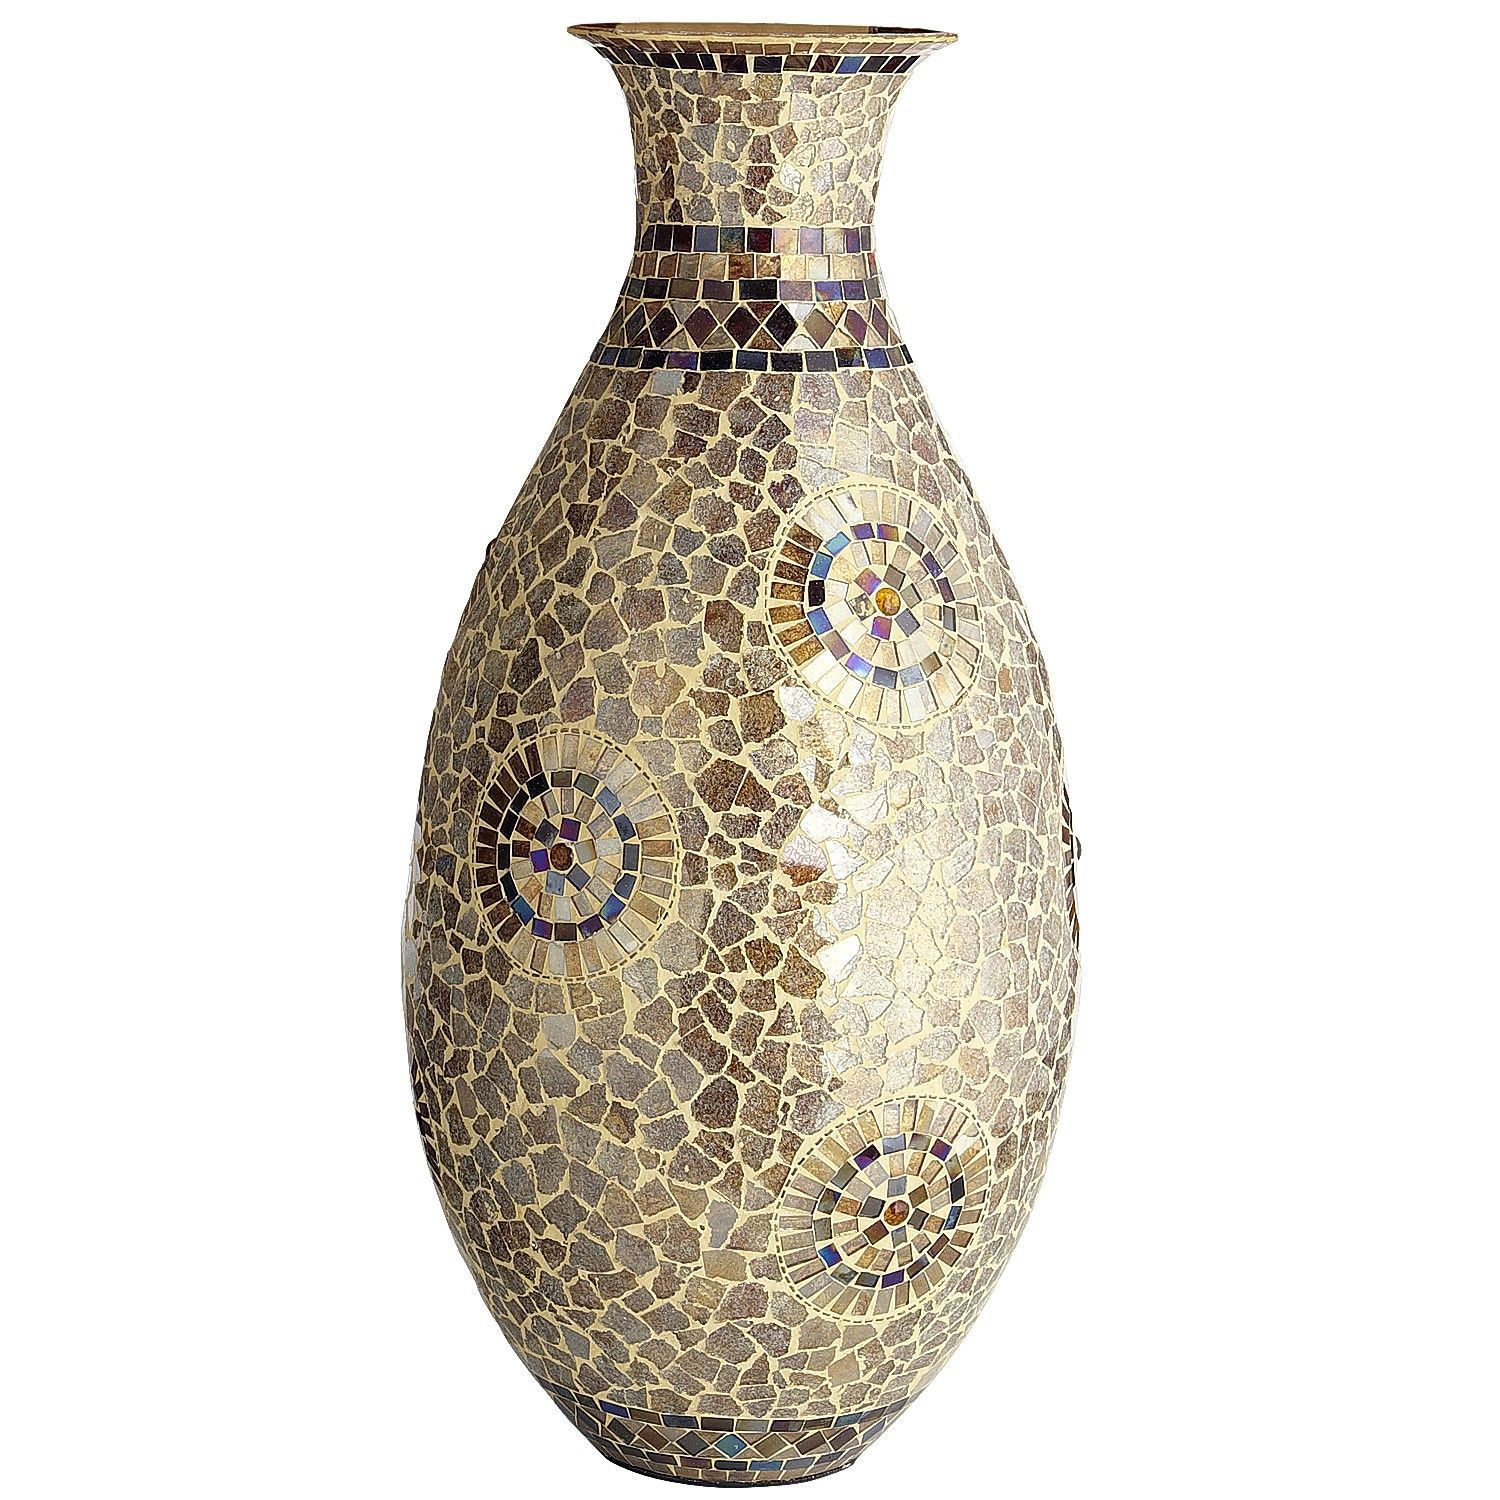 Bright vases trays dishes aroma lamps mirrors in beautiful frames - Mosaic Vase Champagne Gold